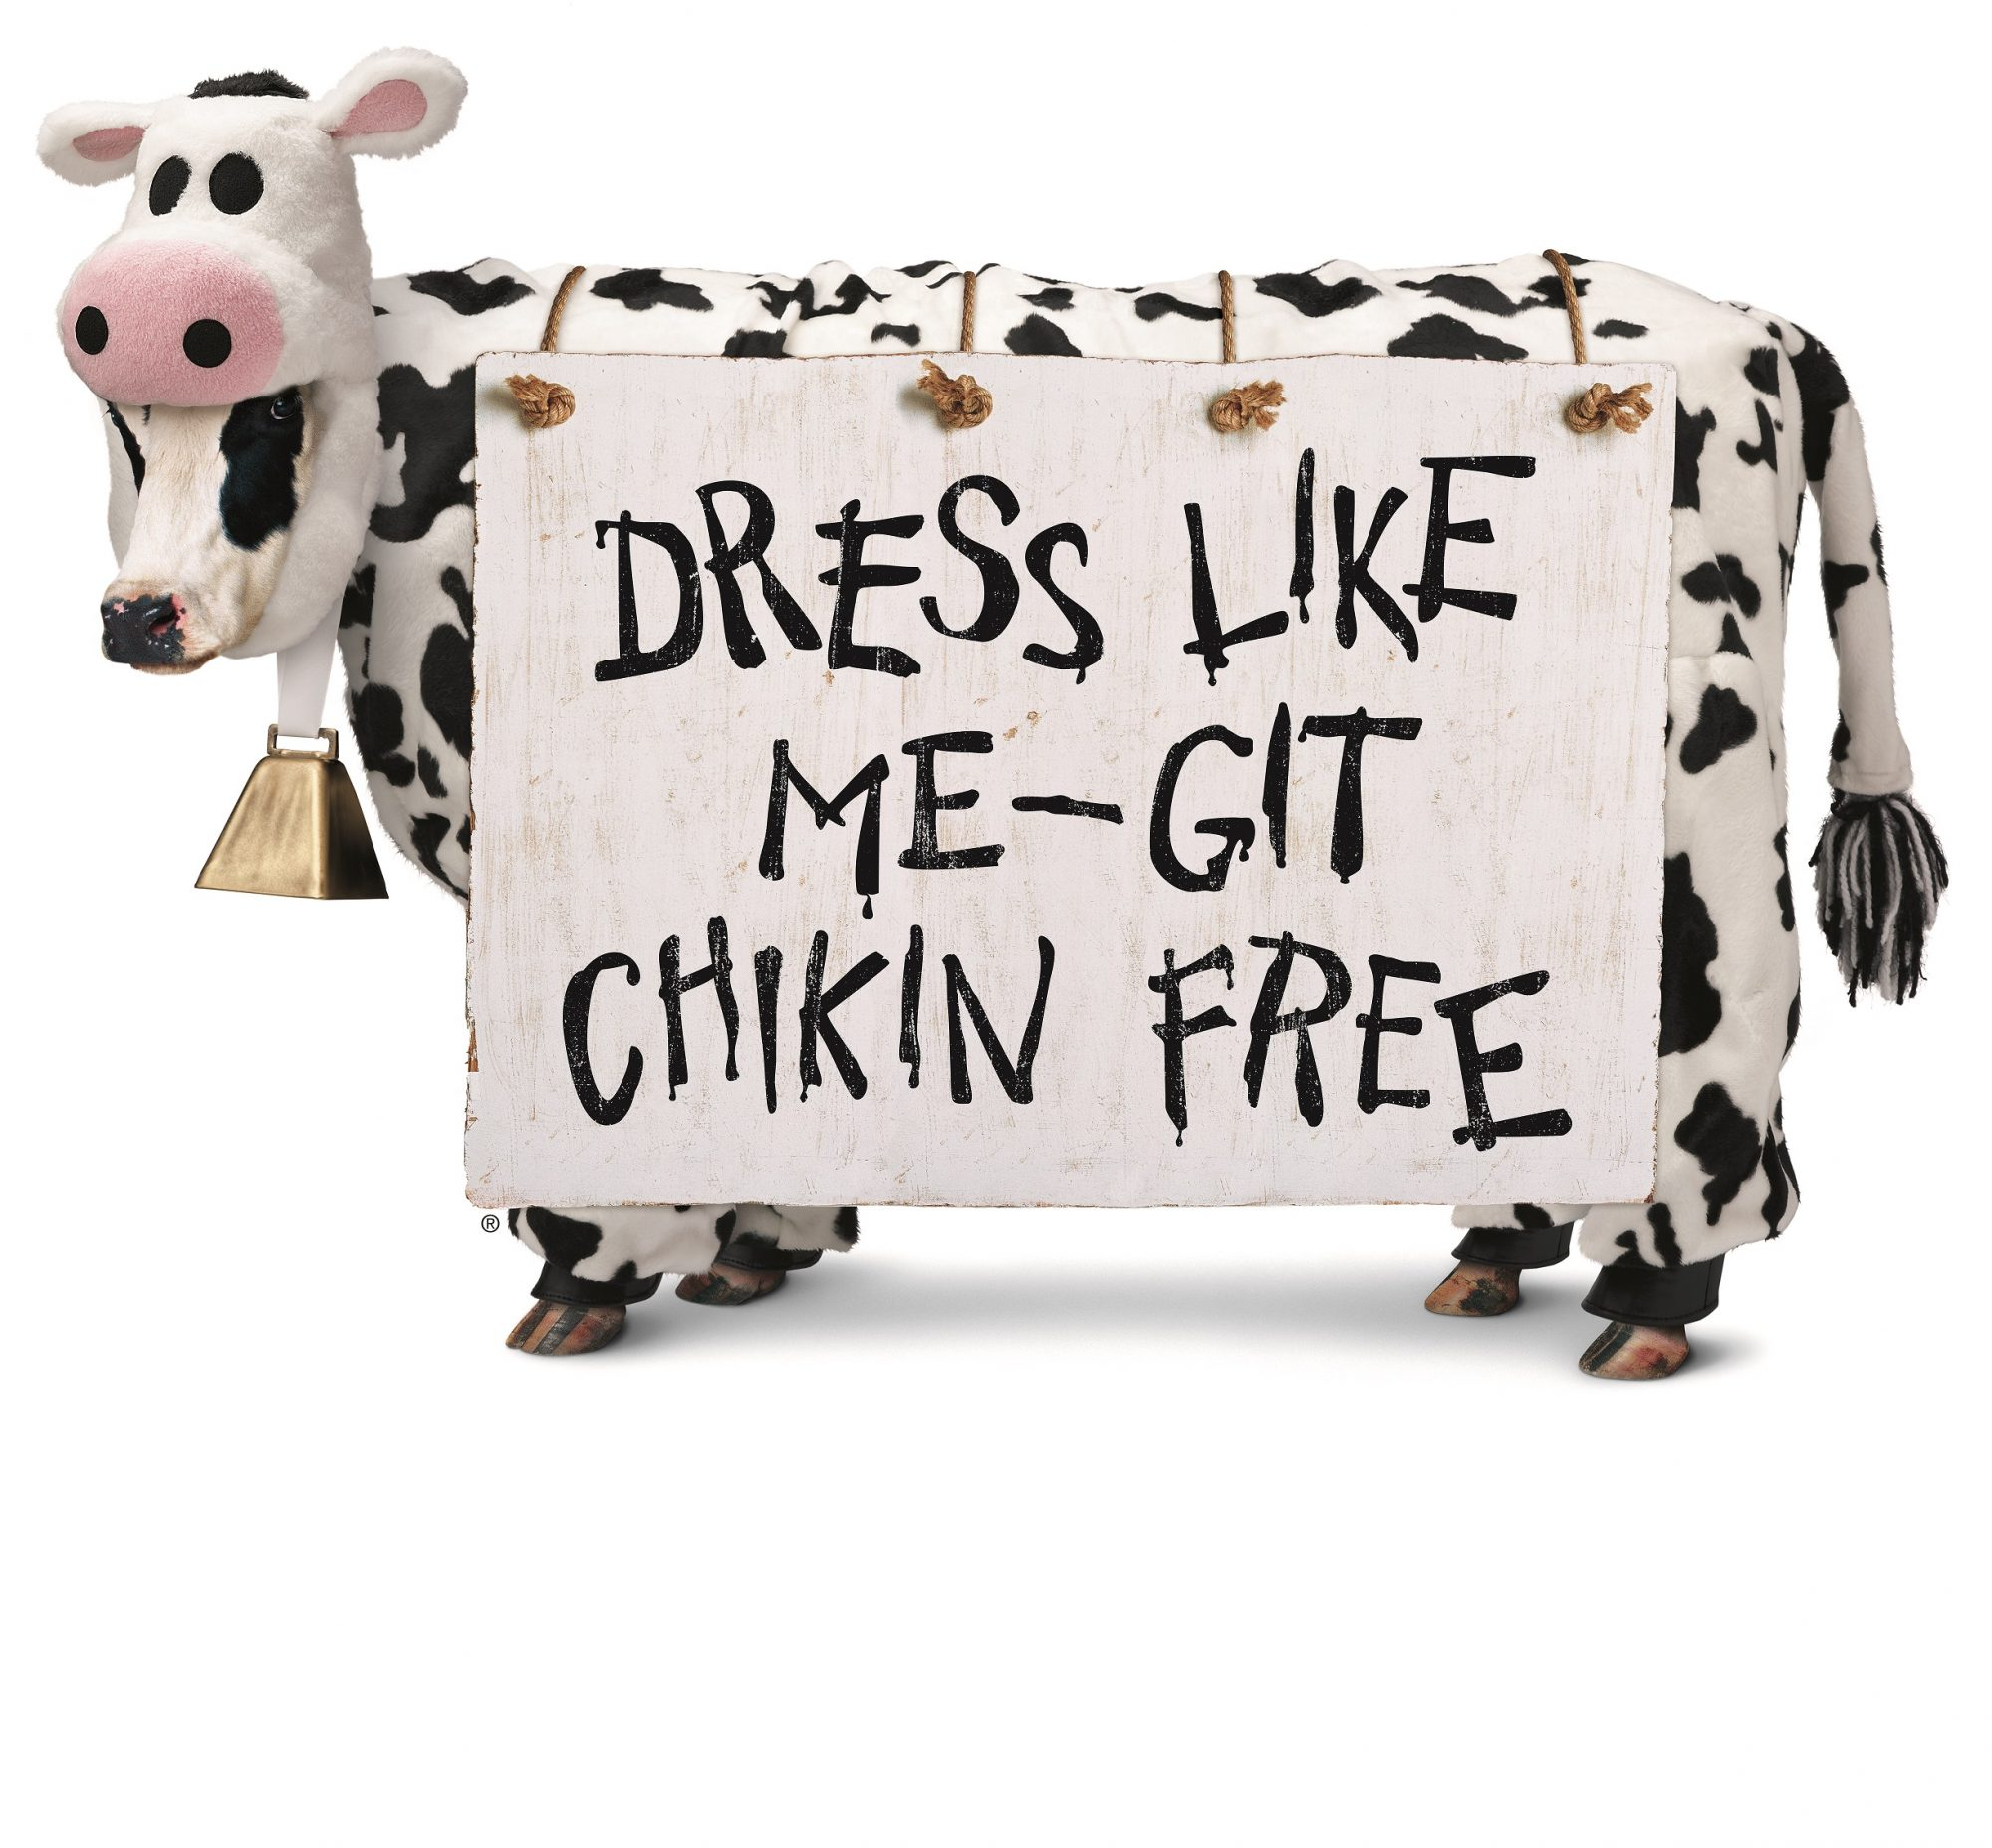 chick fil a free food dress like cow